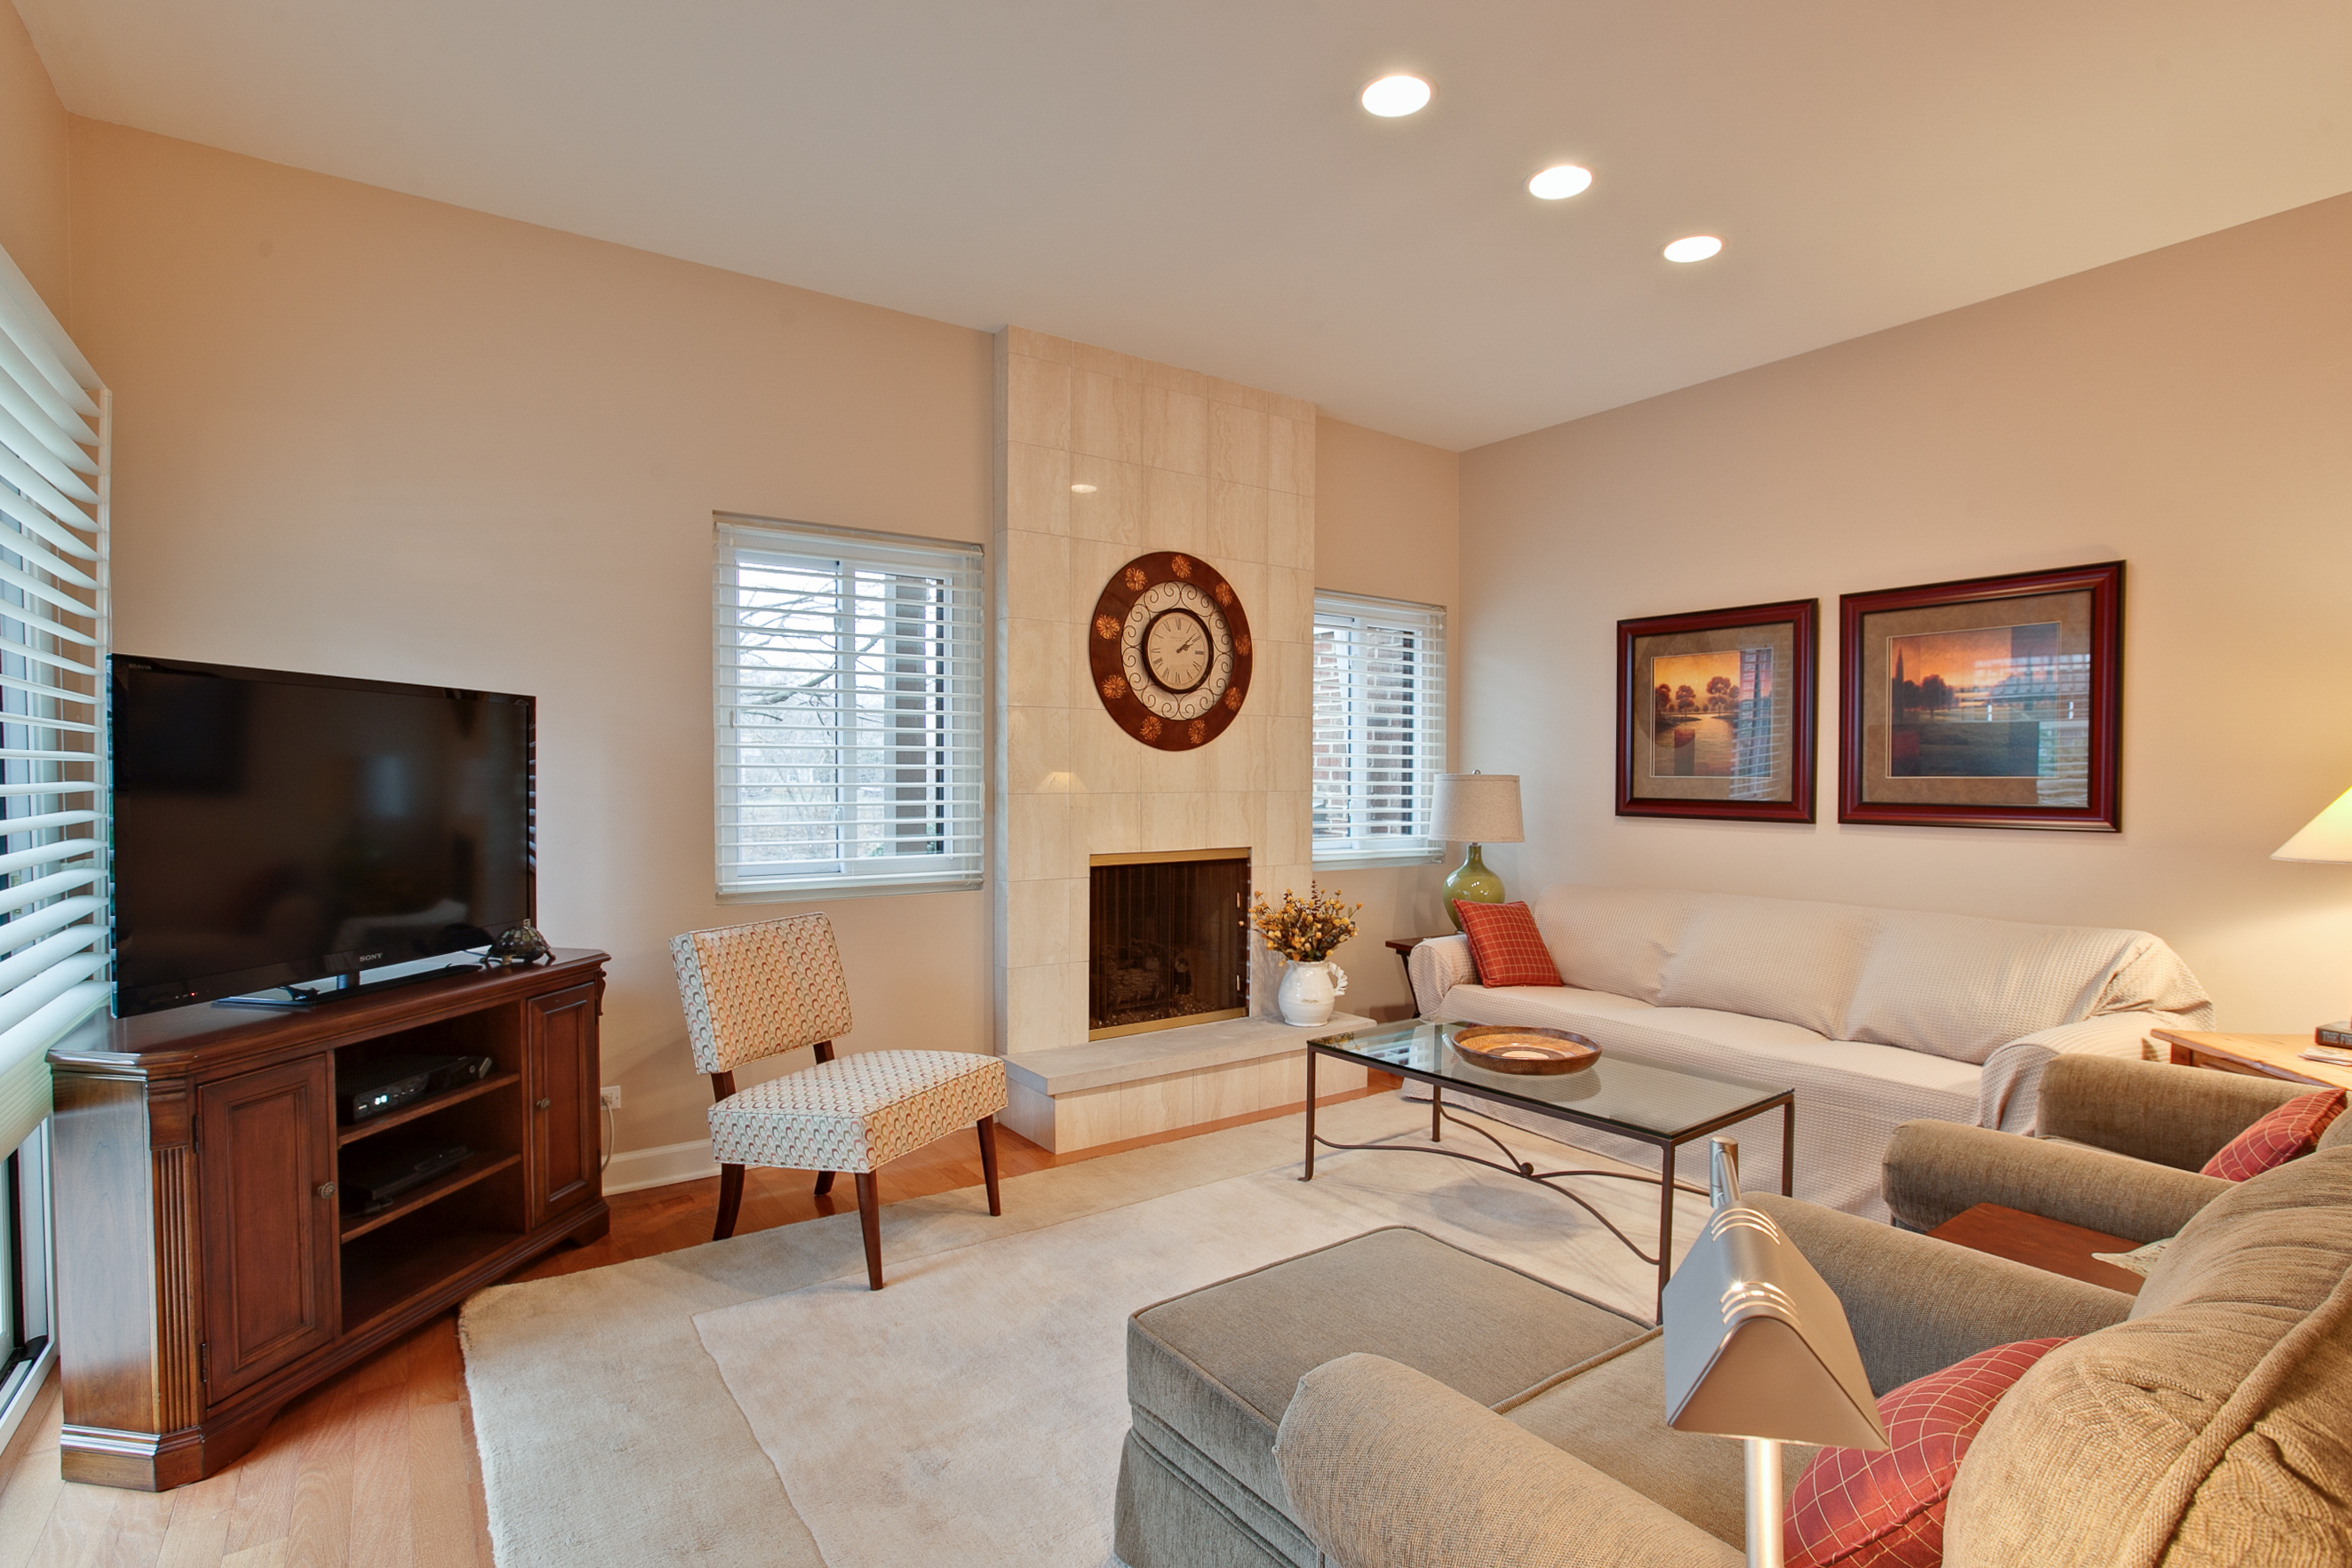 Awesome ... Living Room With Its 9u0027 Foot Ceiling, A Second Fireplace With Marble  Surround And Raised Hearth, Sliders Leading The Private Patio And A View Of  The ...